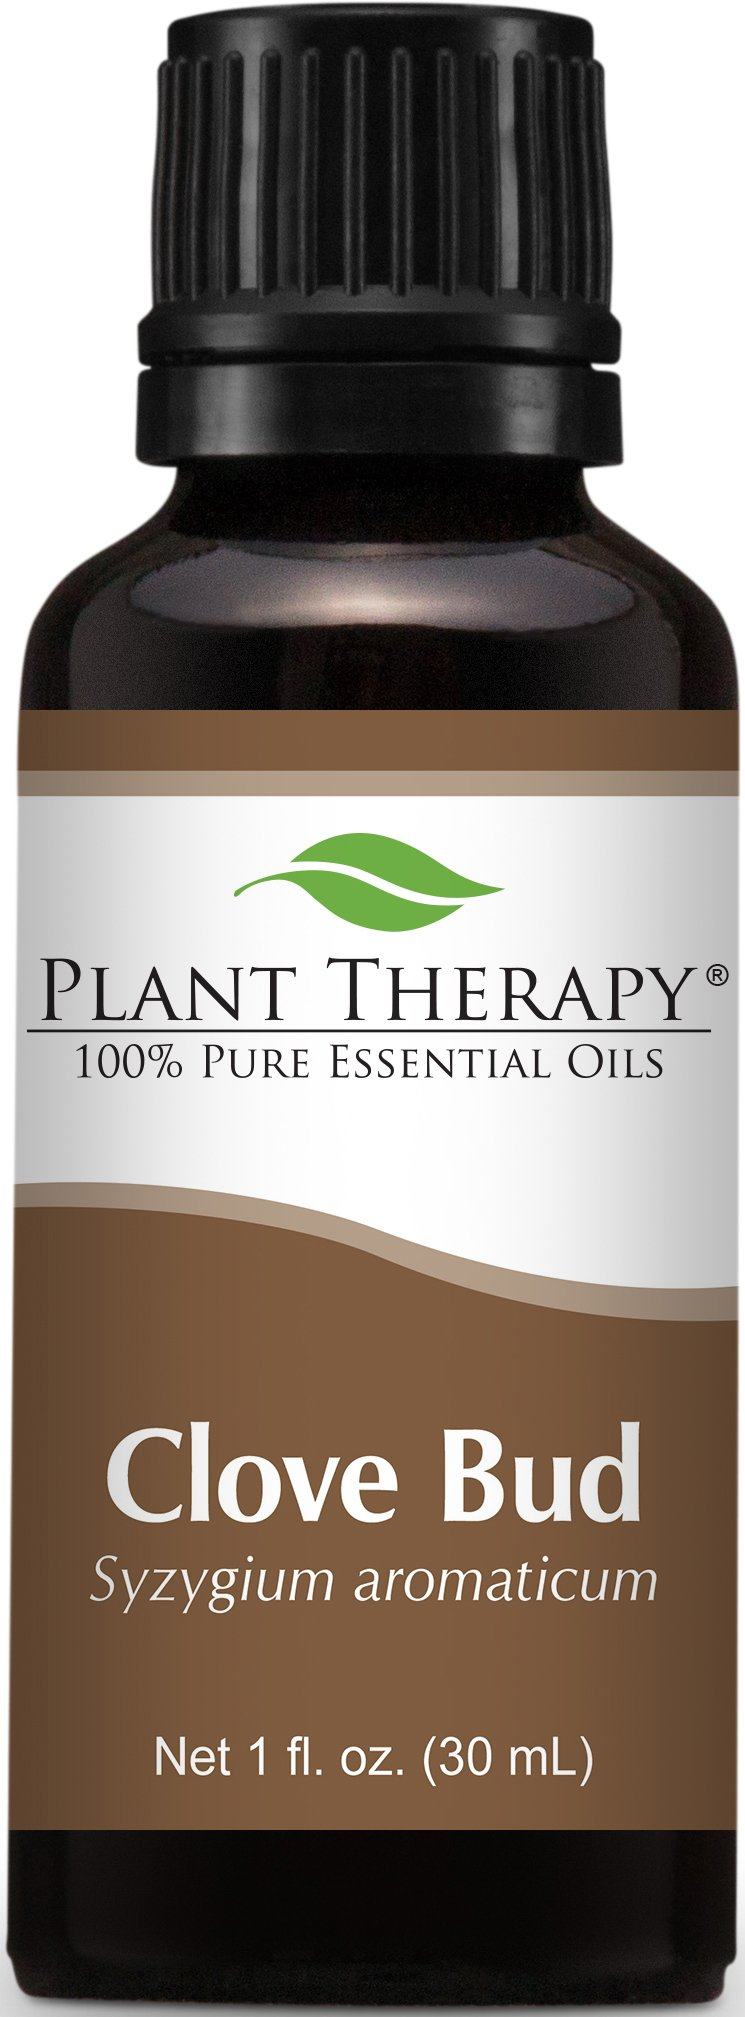 Plant Therapy Clove Bud Essential Oil. 100% Pure, Undiluted, Therapeutic Grade. 30 ml (1 oz).